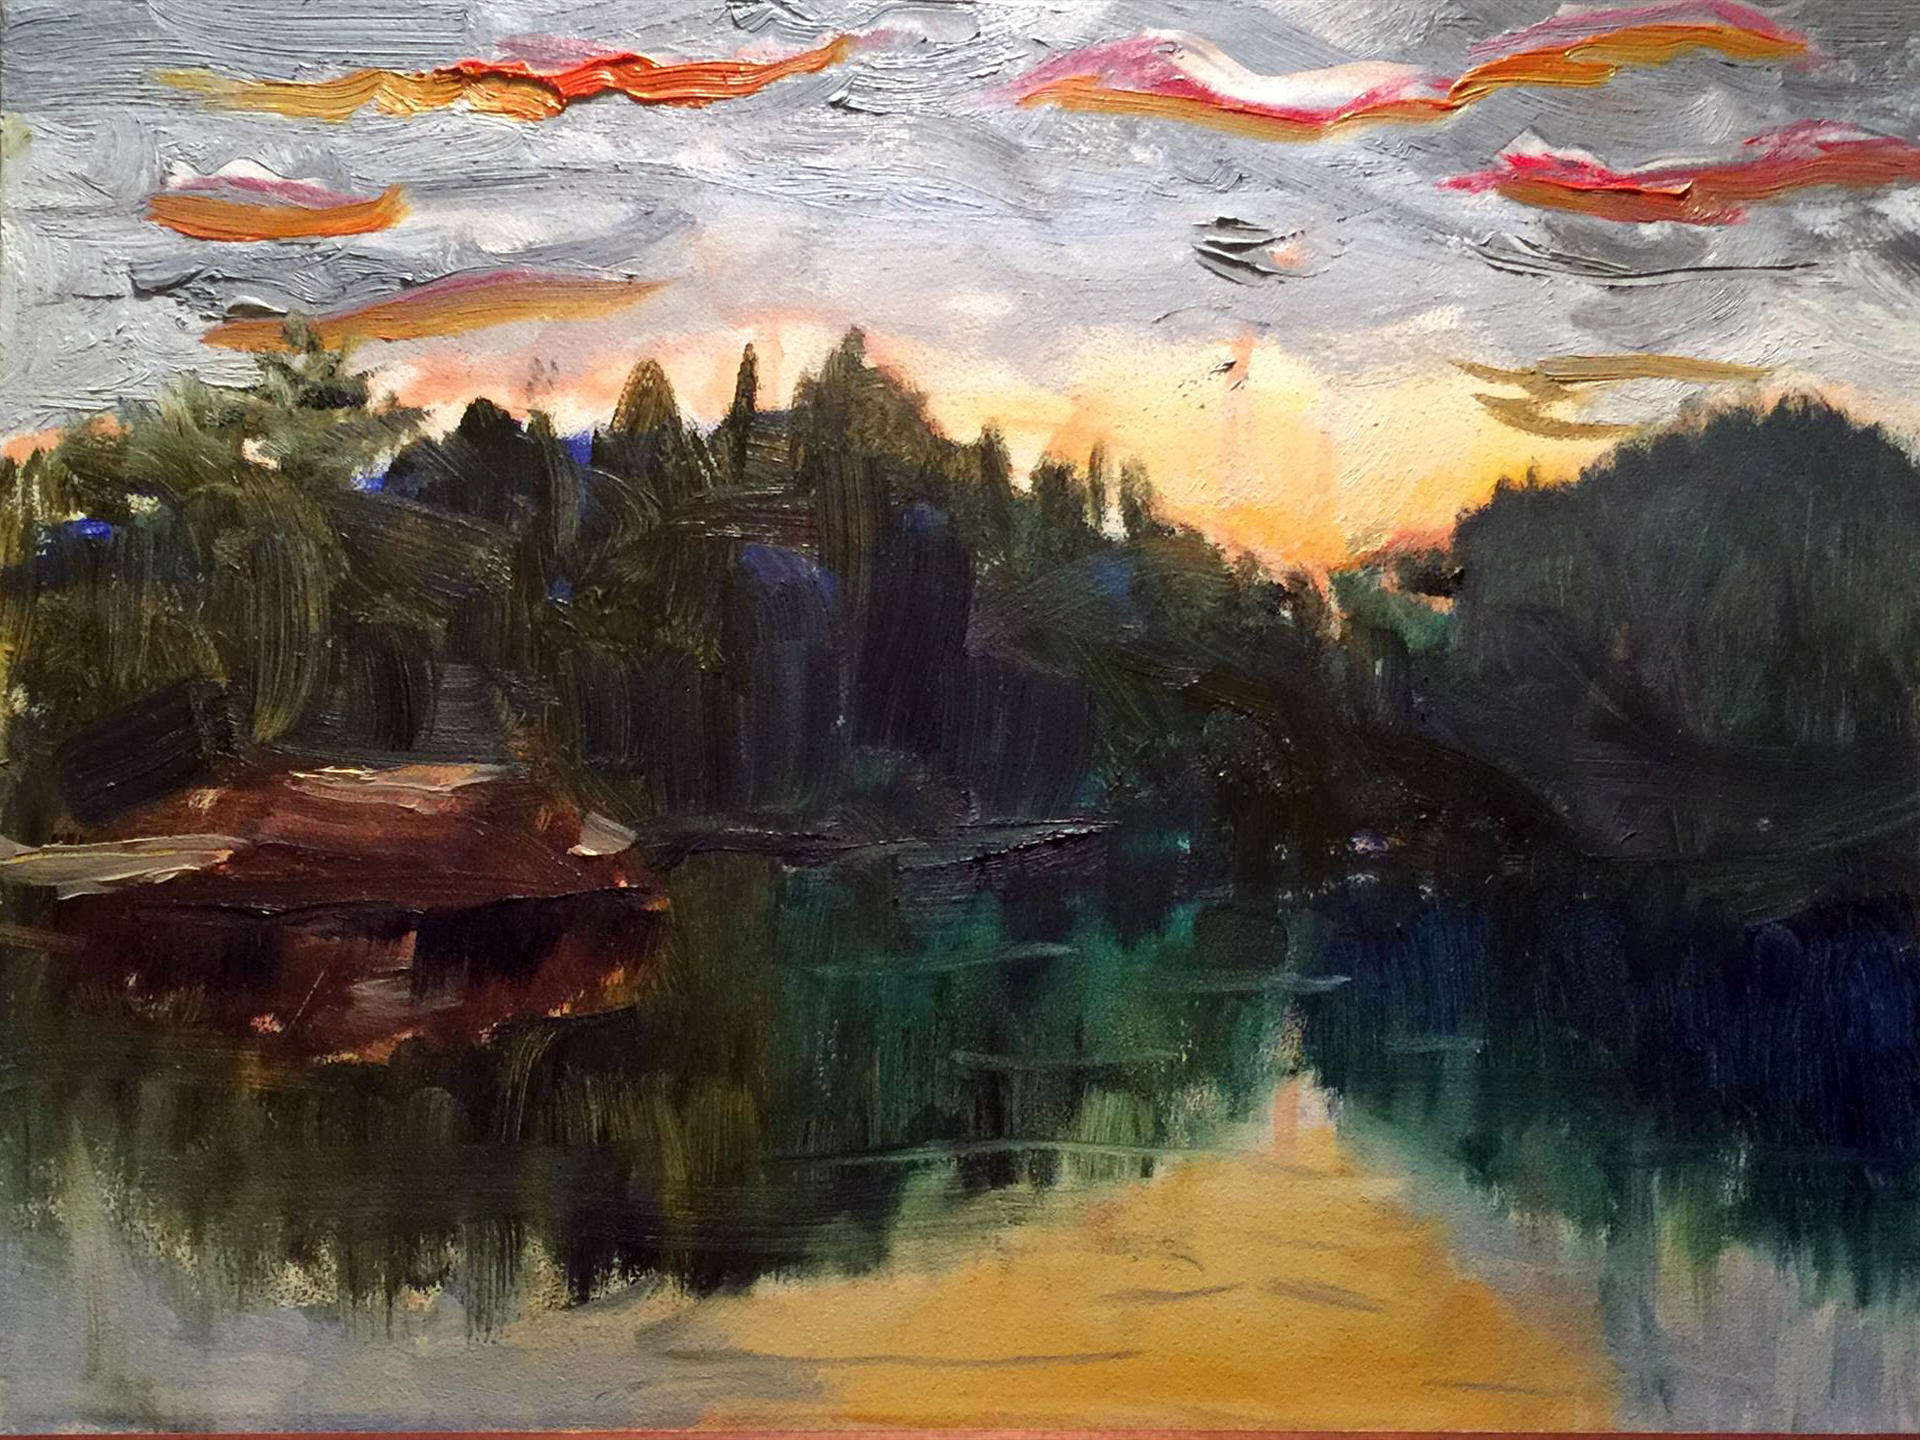 Maureen Bodin | ADIRONDACK END OF DAY | oil | frame size 10x12